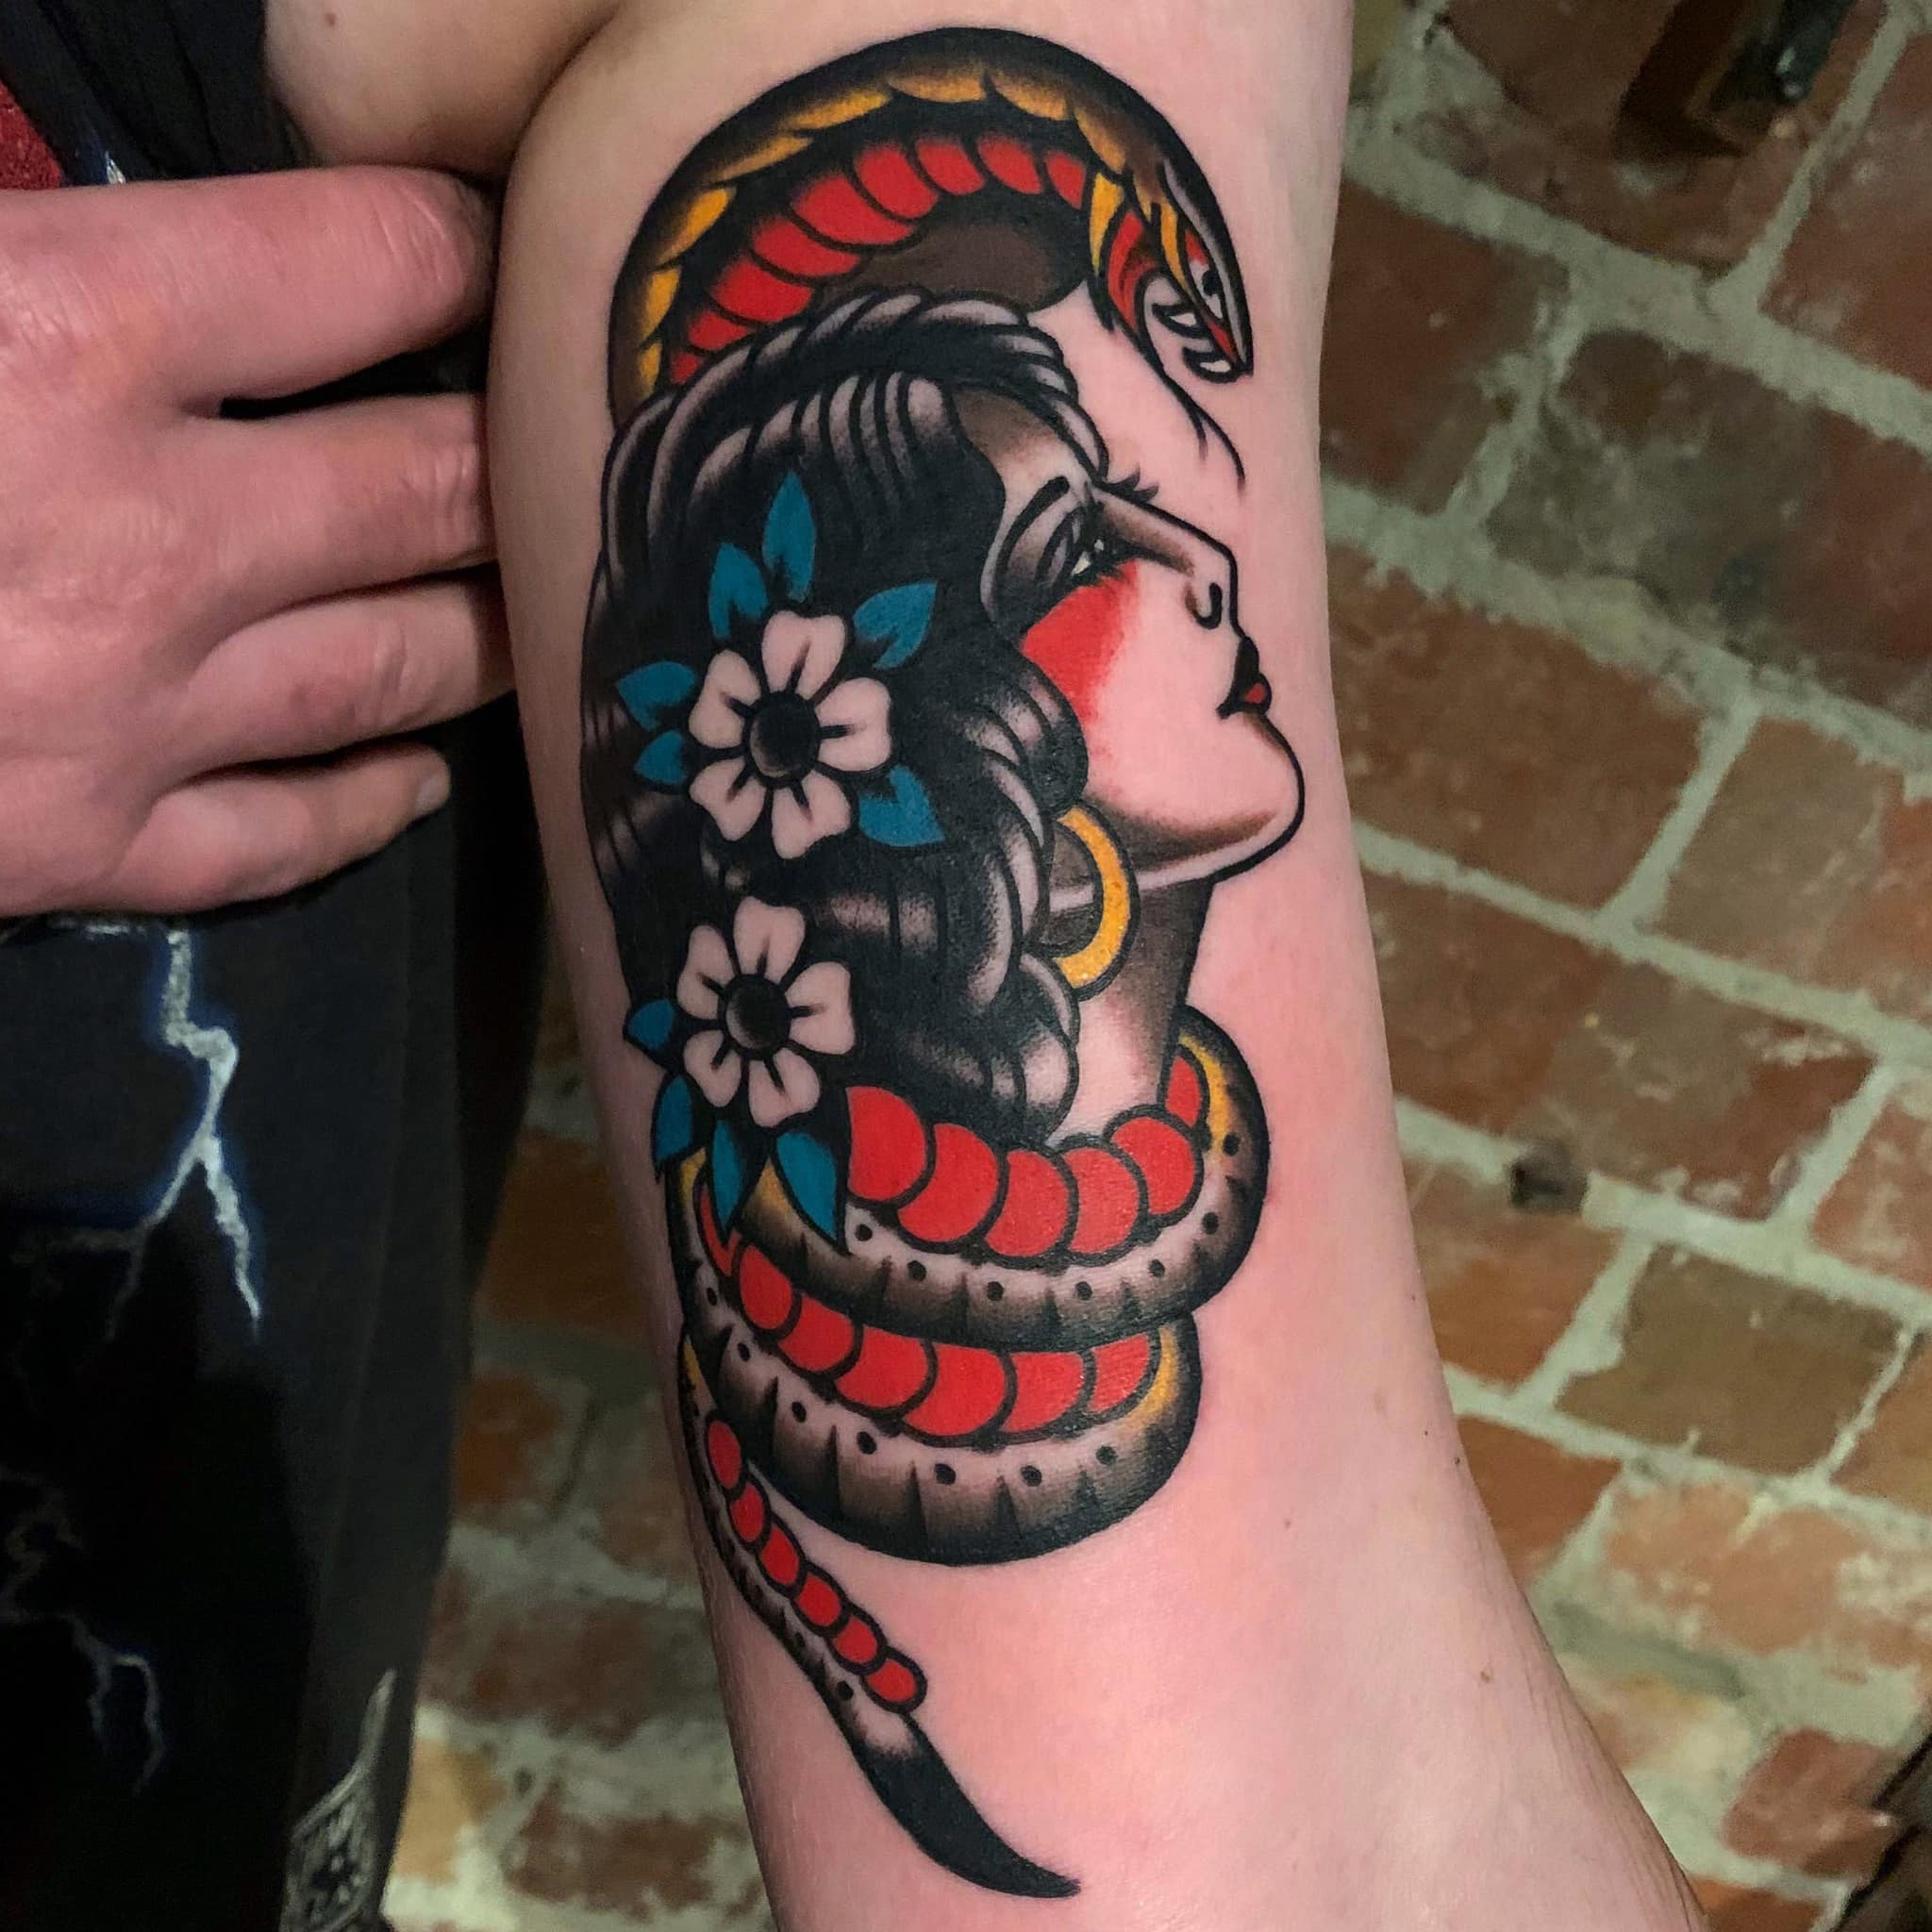 Tattoo Artists in Ballarat